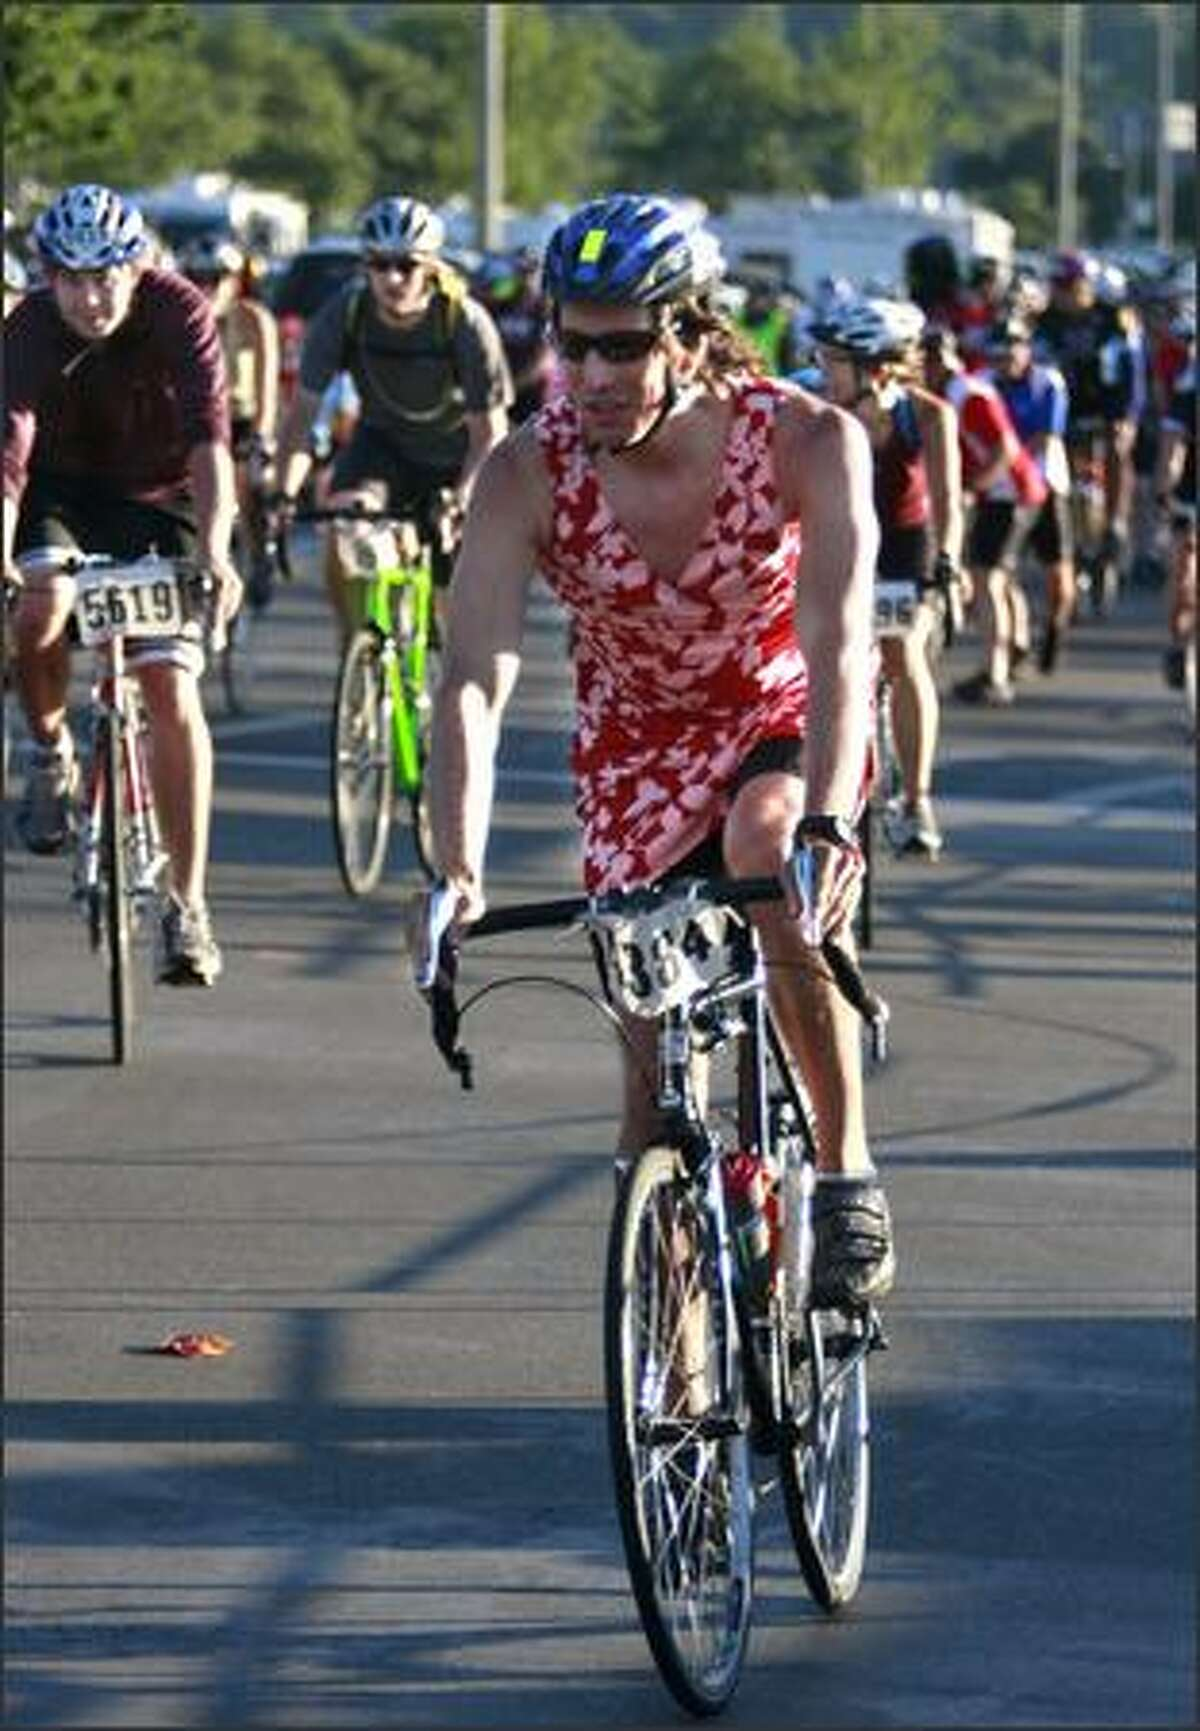 Bicyclists begin the ride.